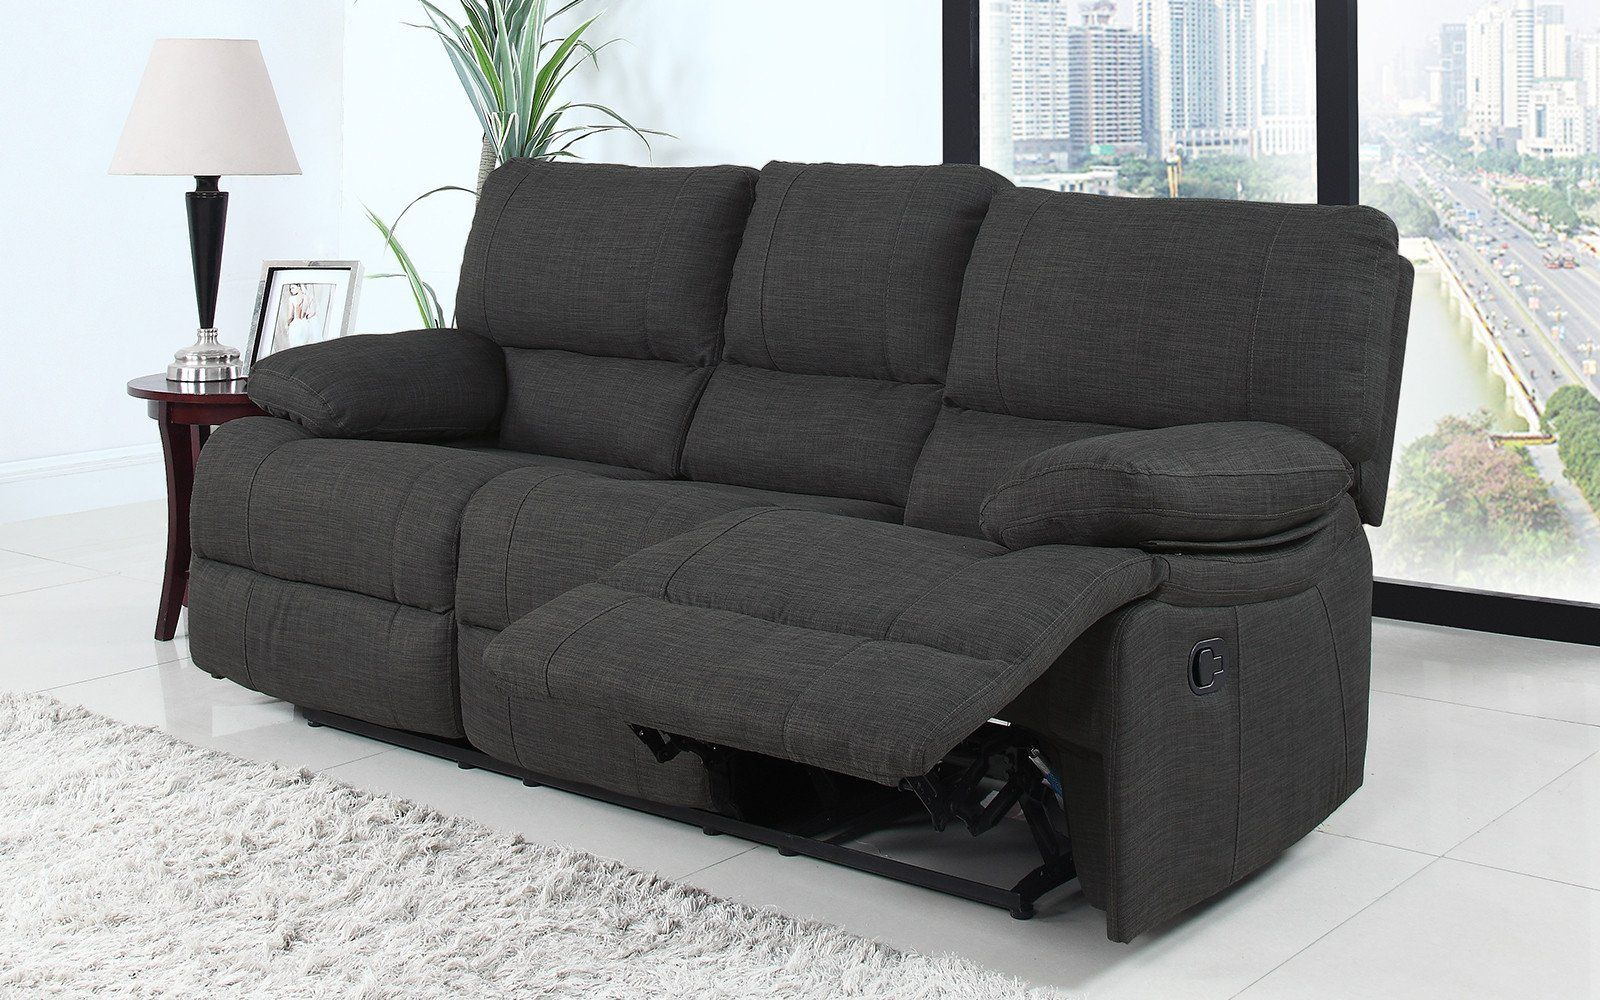 Athens Traditional Fabric Recliner Sofa Lifestyle Recliner Chair